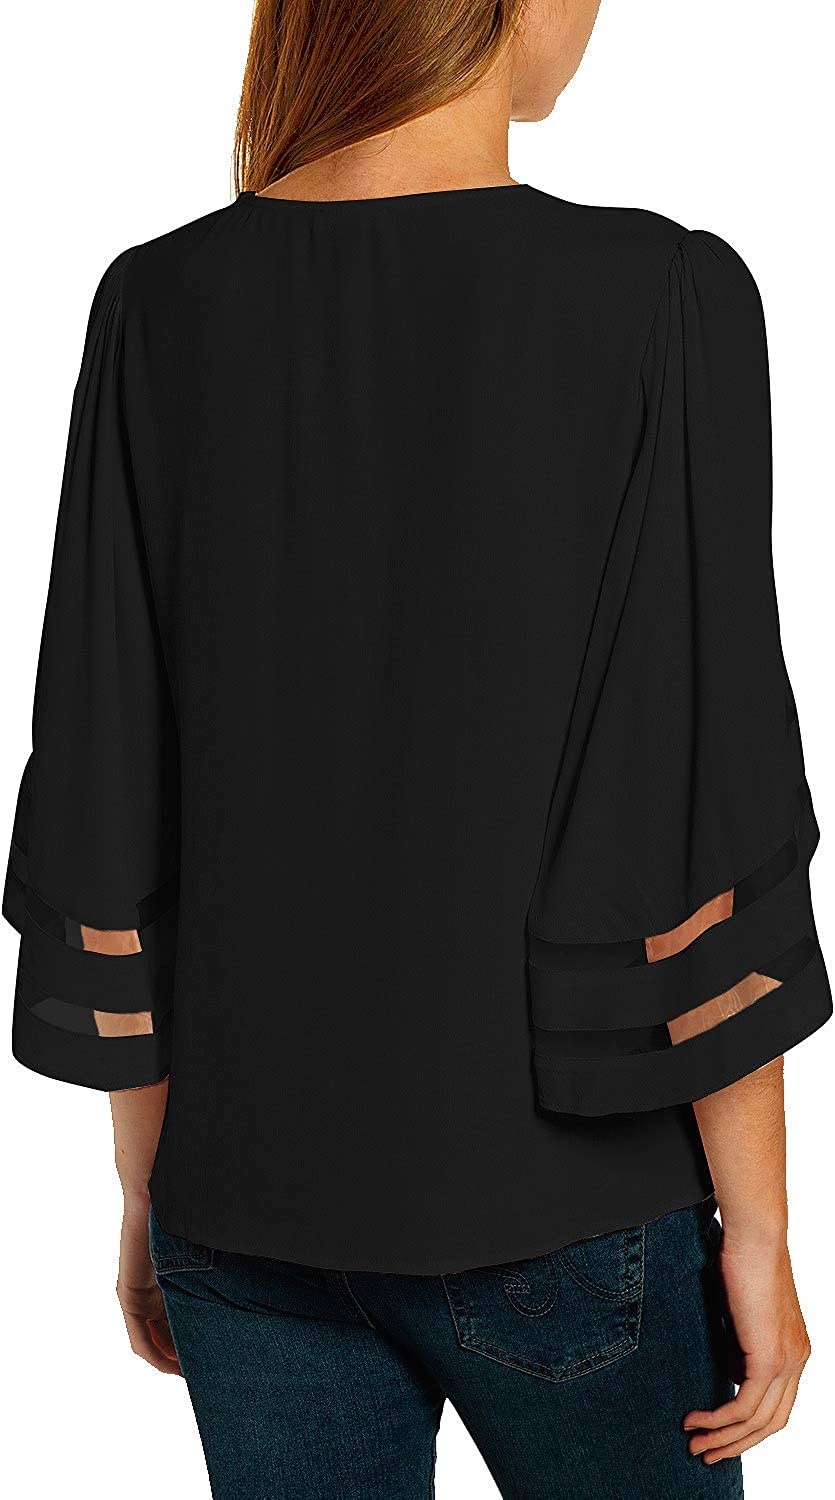 luvamia Women Casual Strappy V Neck Blouse 3//4 Bell Sleeve Mesh Panel Shirts Top